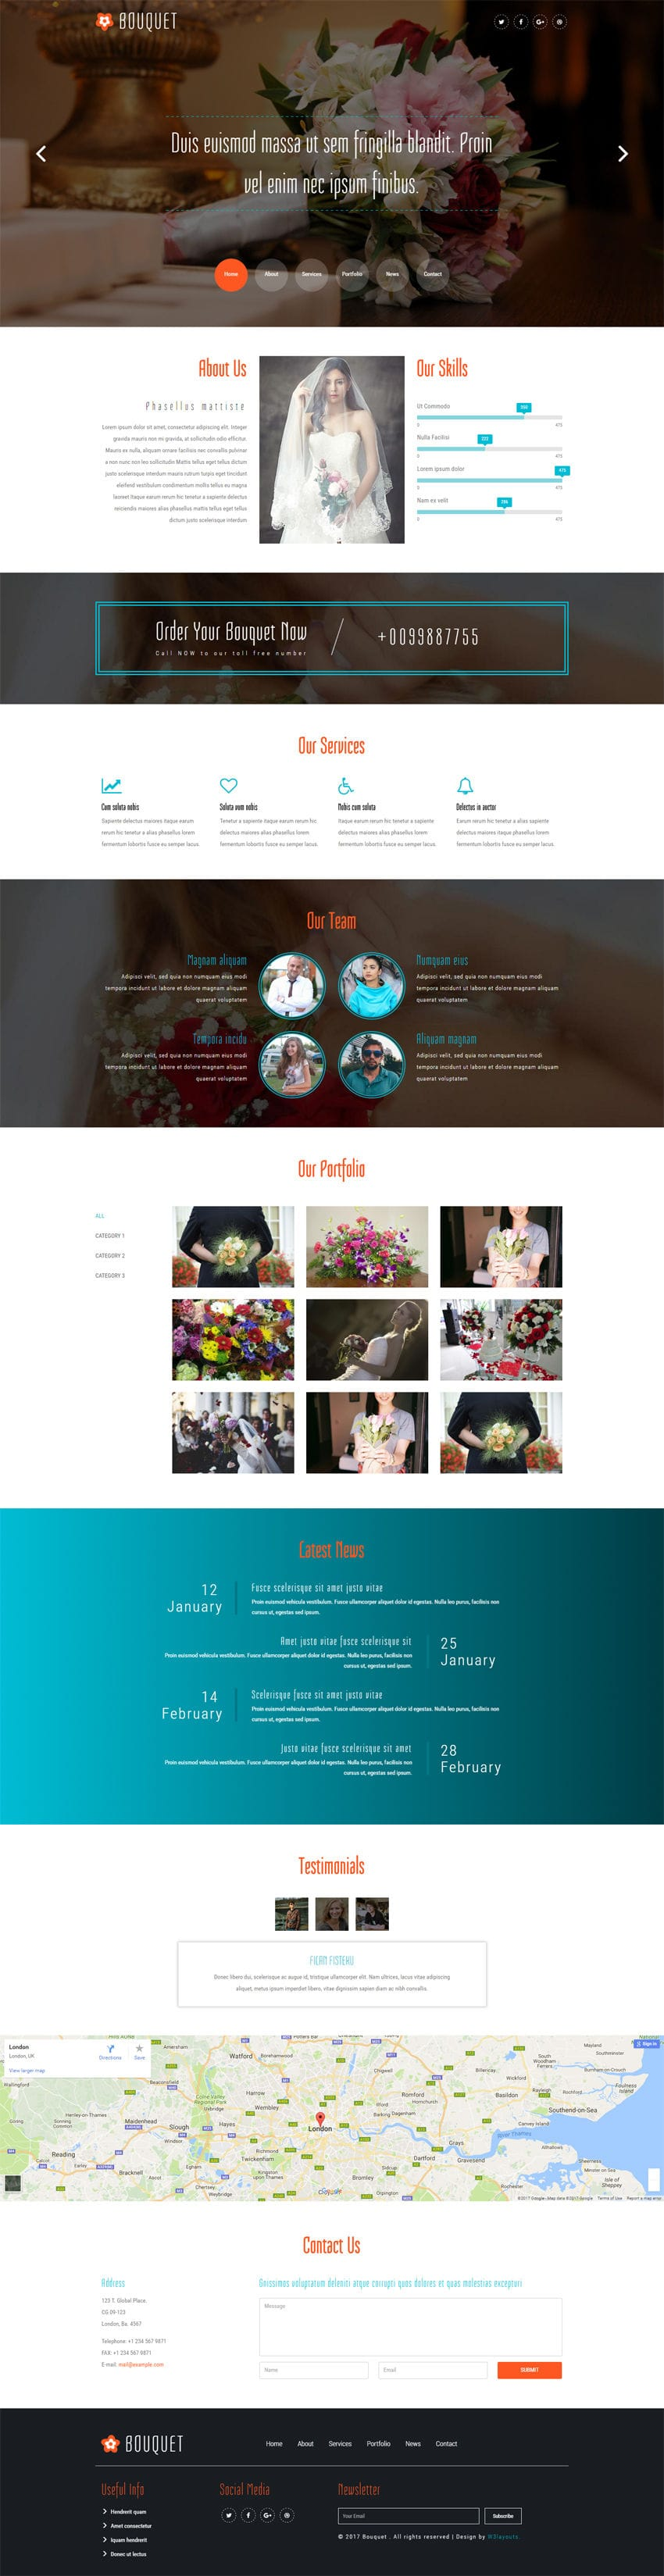 bouquet a wedding category bootstrap responsive web template. Black Bedroom Furniture Sets. Home Design Ideas